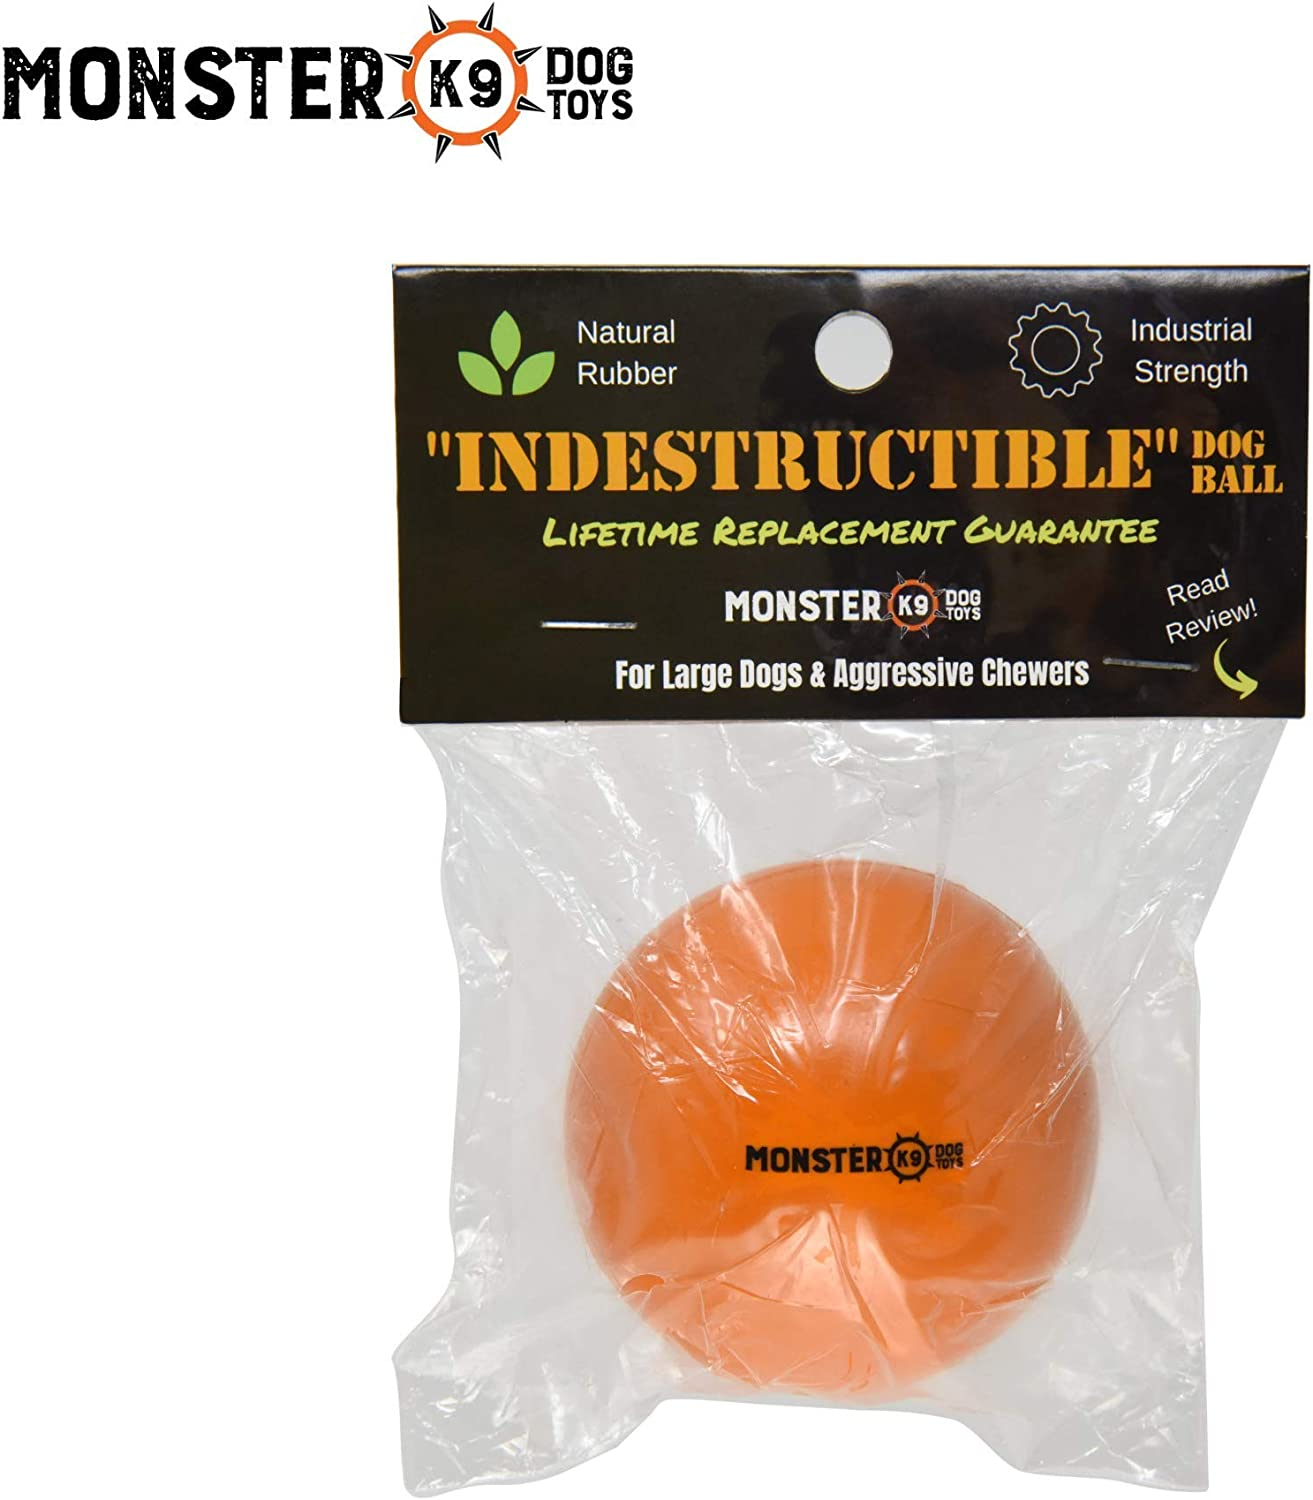 Monster K9 Dog Toys - Pelota de perro indestructible: Amazon.es: Hogar